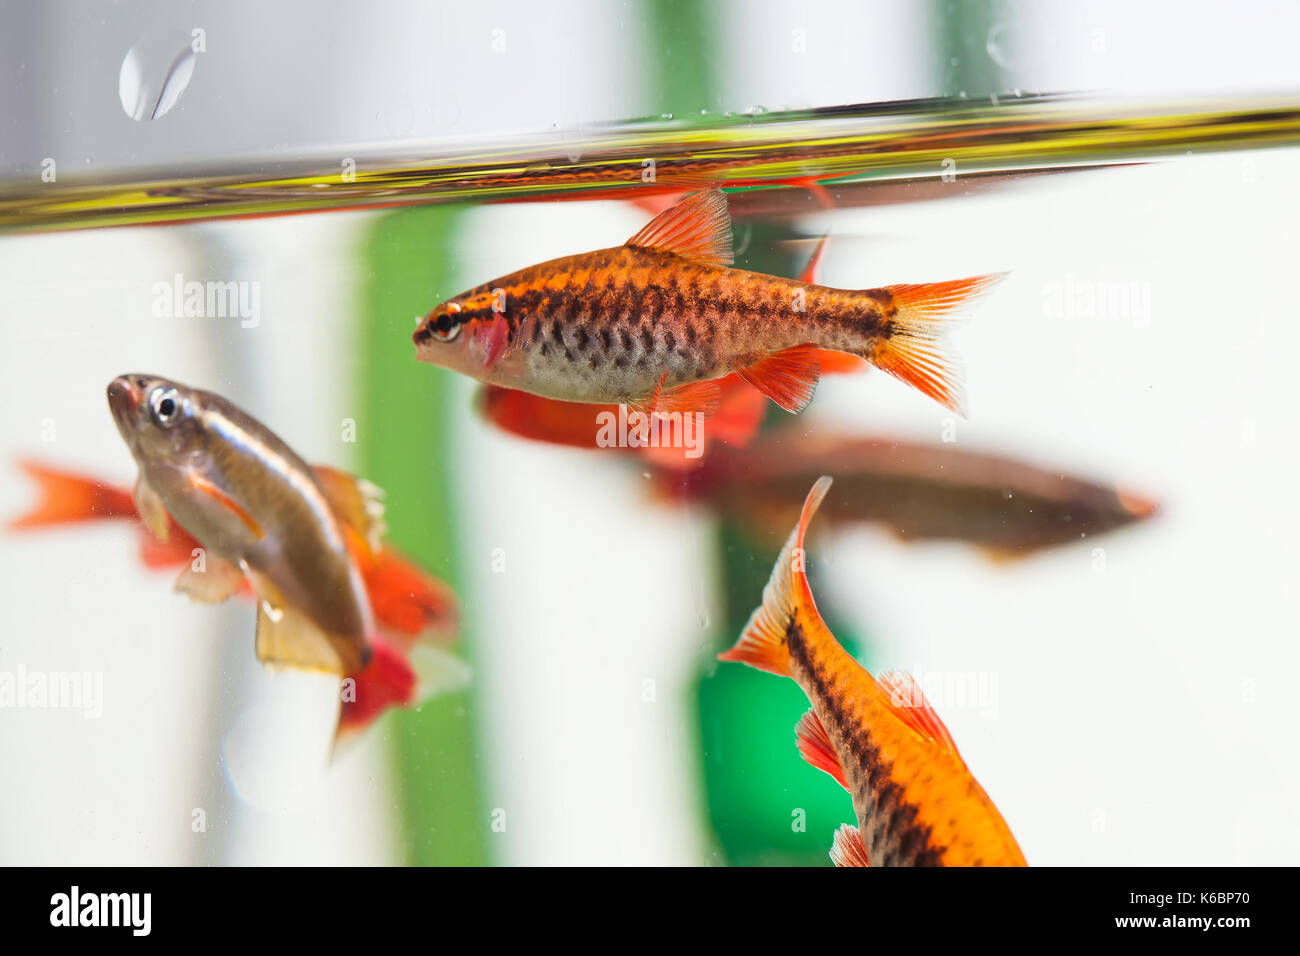 Group beautiful aquarium fishes red orange color. Cherry barb fishes macro nature concept. shallow depth of field, Stock Photo